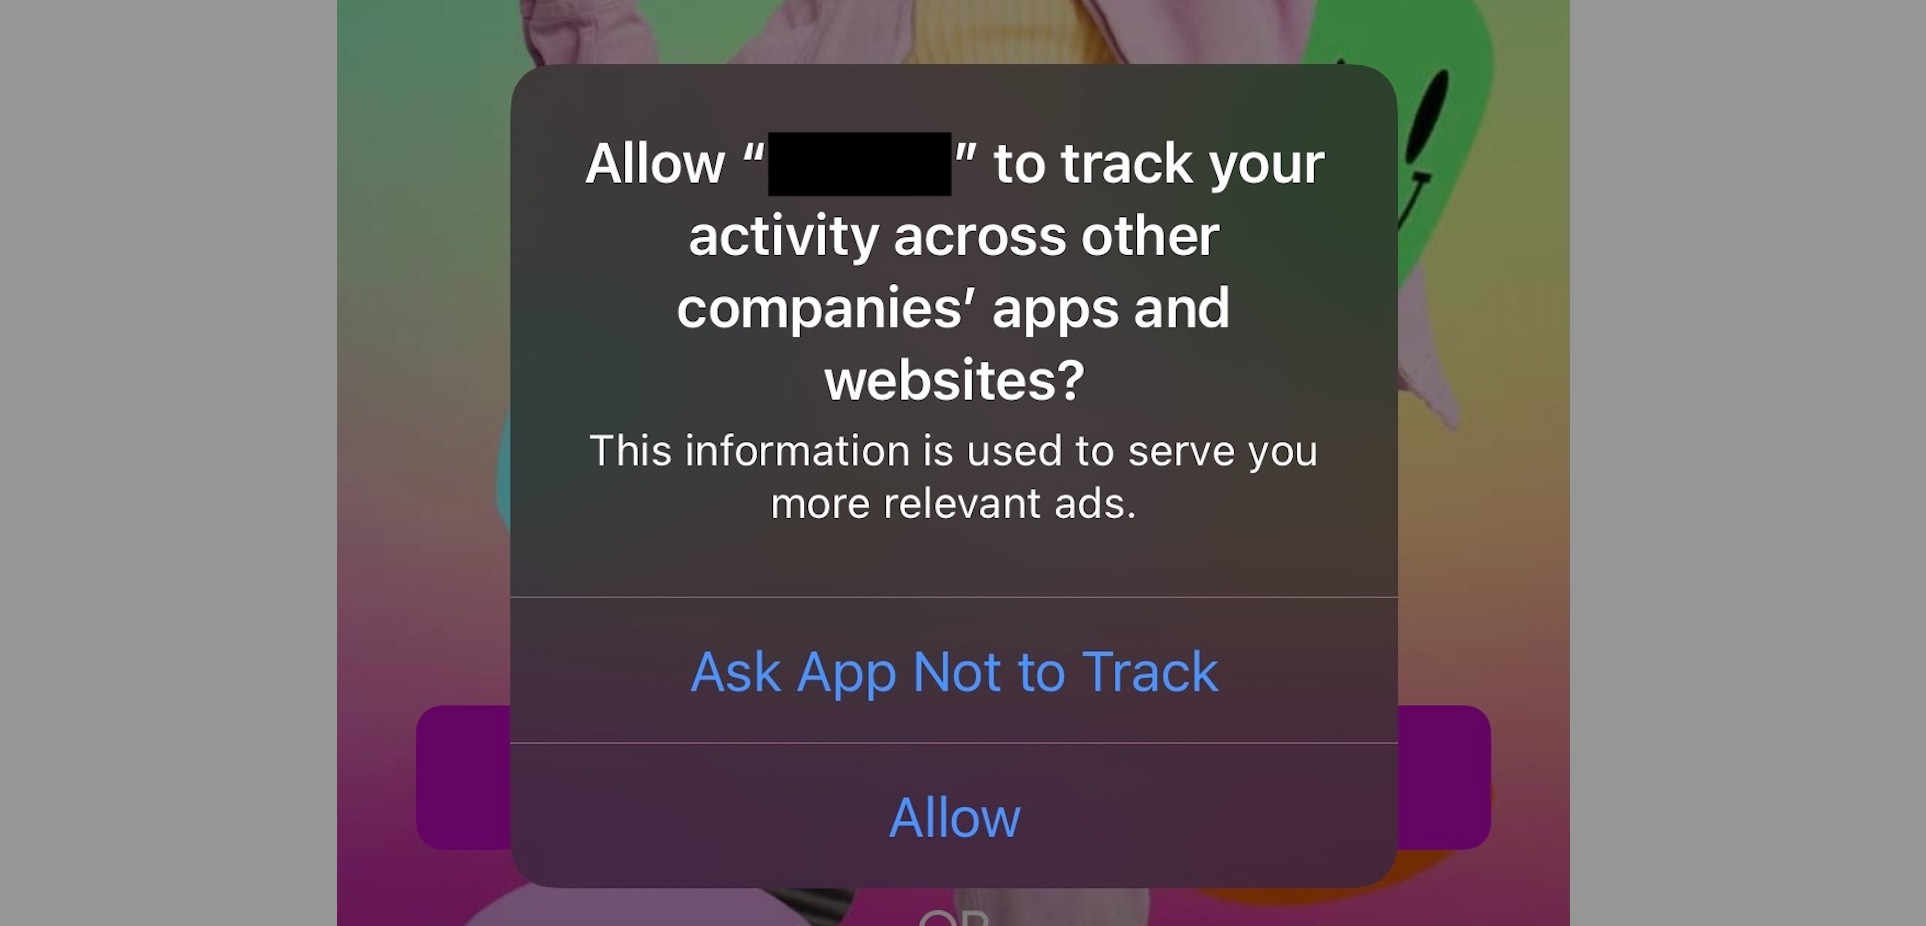 """The standard ATT dialog with message: """"Allow [insert app name here]"""" to track your activity across other companies' apps and websites?"""" and two choices """"Ask App Not to Track"""" and """"Allow"""""""